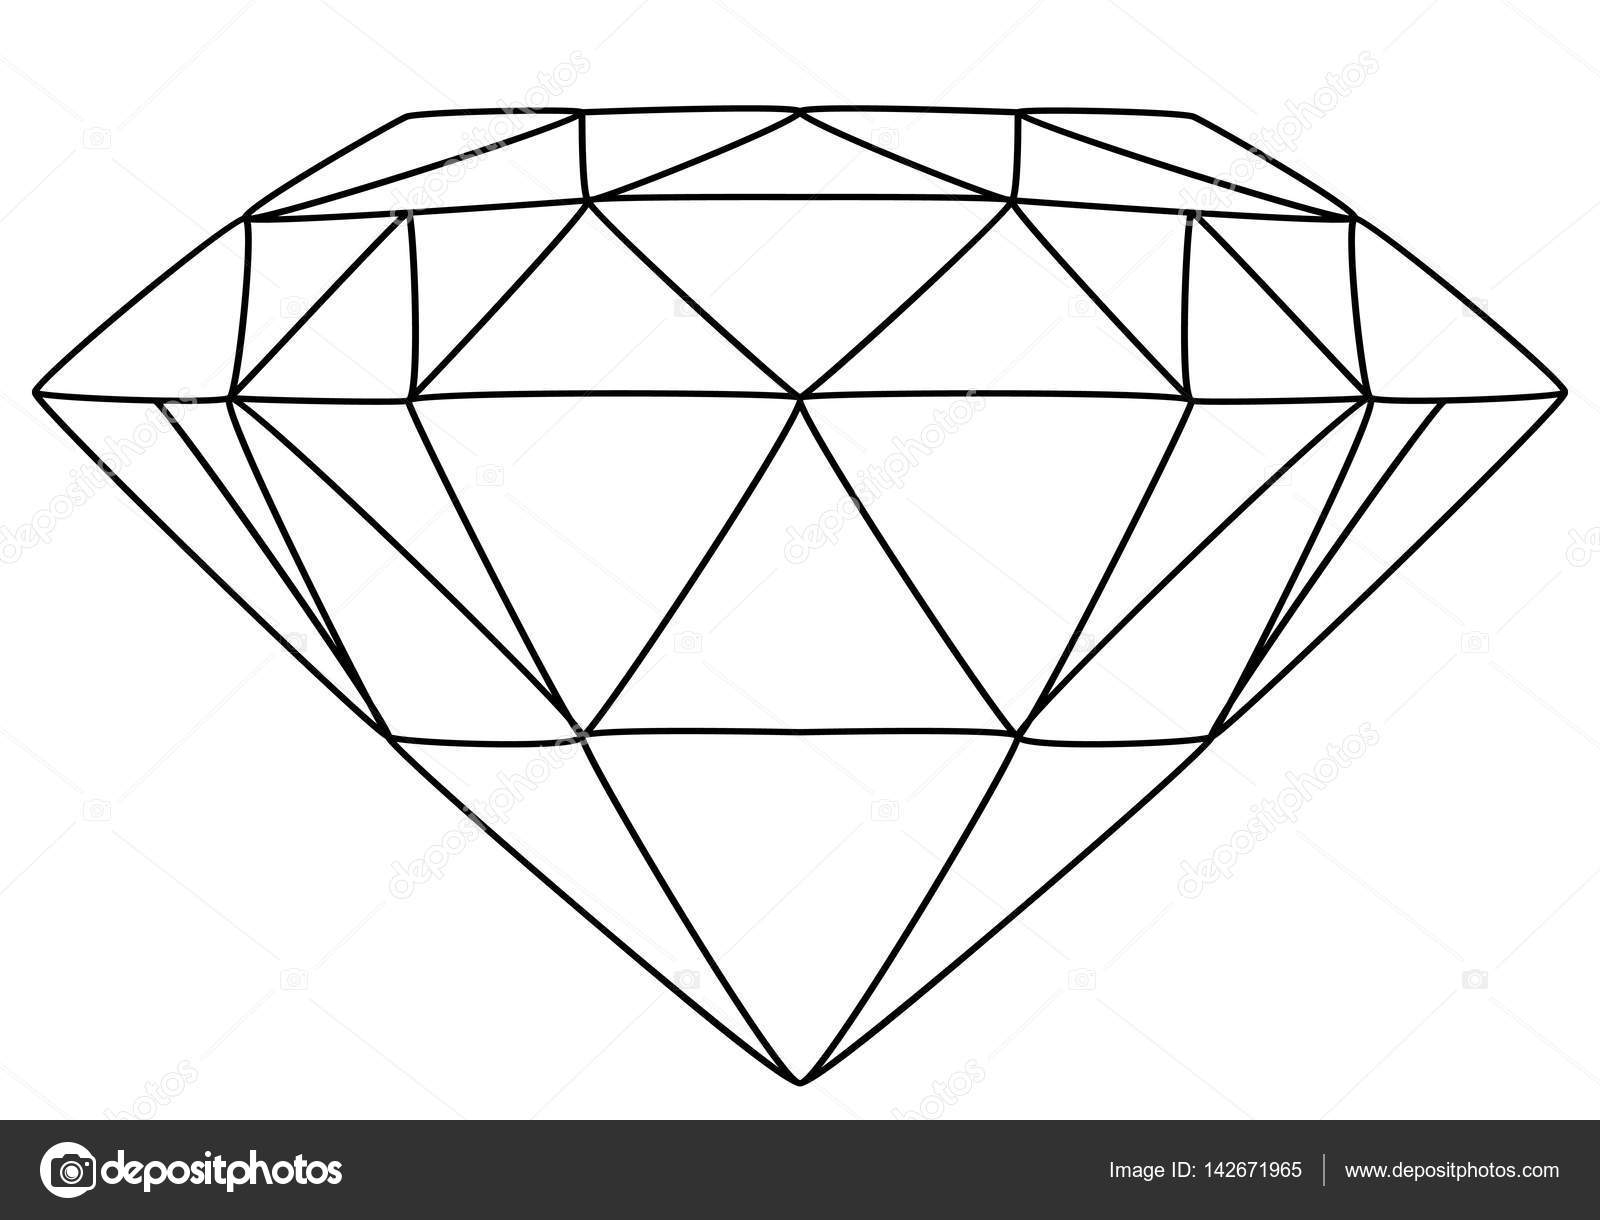 Line Drawing Diamond : Dessin au trait diamant — image vectorielle lukalex